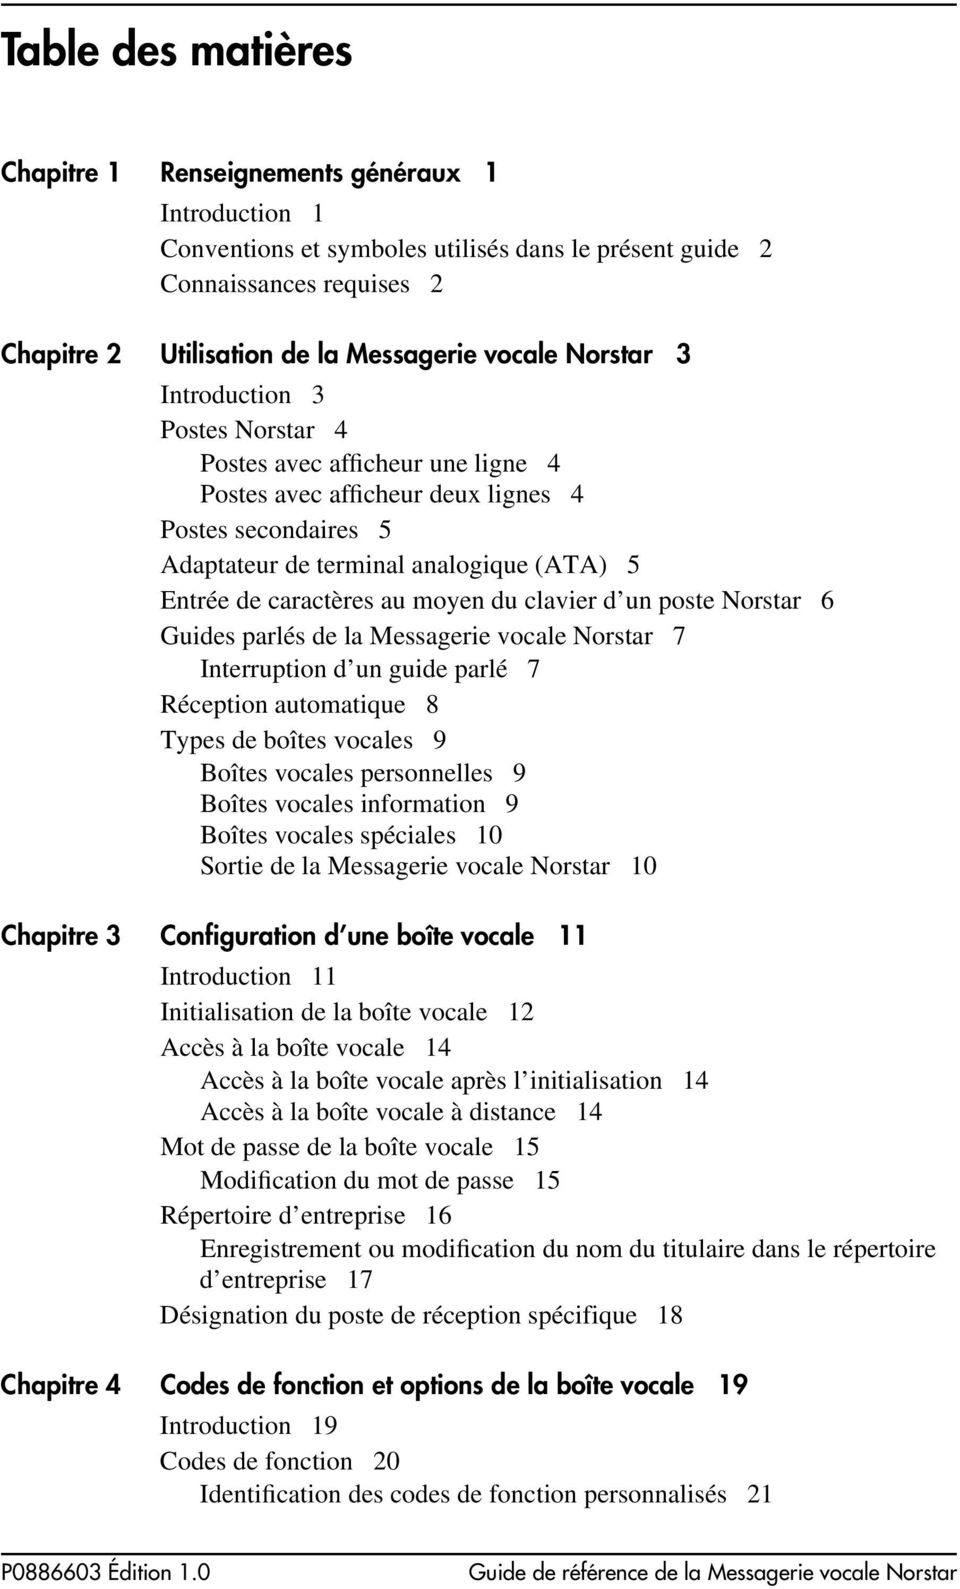 moyen du clavier d un poste Norstar 6 Guides parlés de la Messagerie vocale Norstar 7 Interruption d un guide parlé 7 Réception automatique 8 Types de boîtes vocales 9 Boîtes vocales personnelles 9